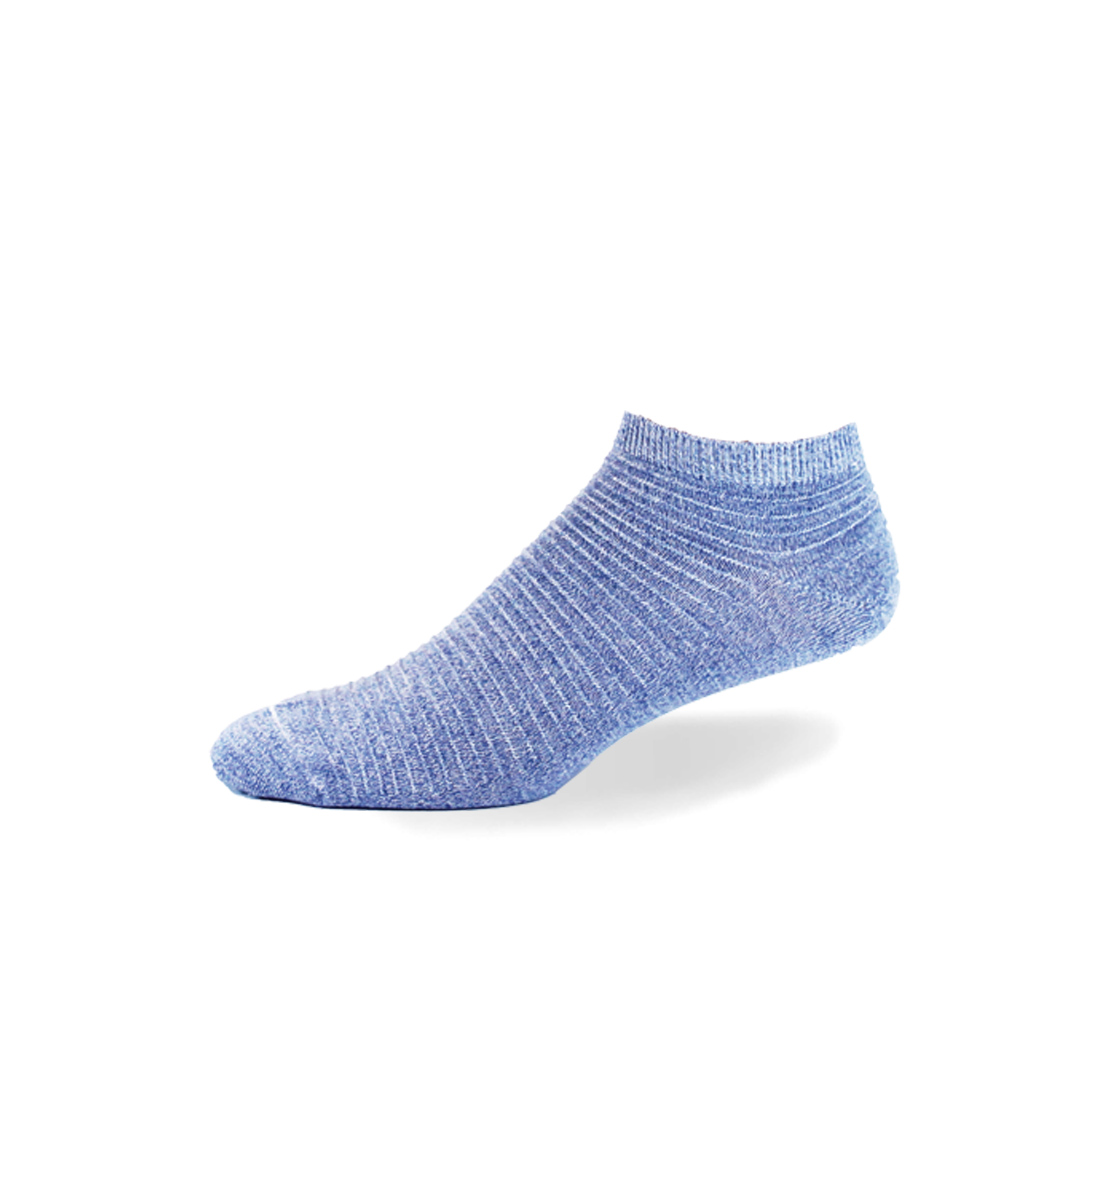 Link Patterned Ankle Men's Socks, Light Denim, hi-res